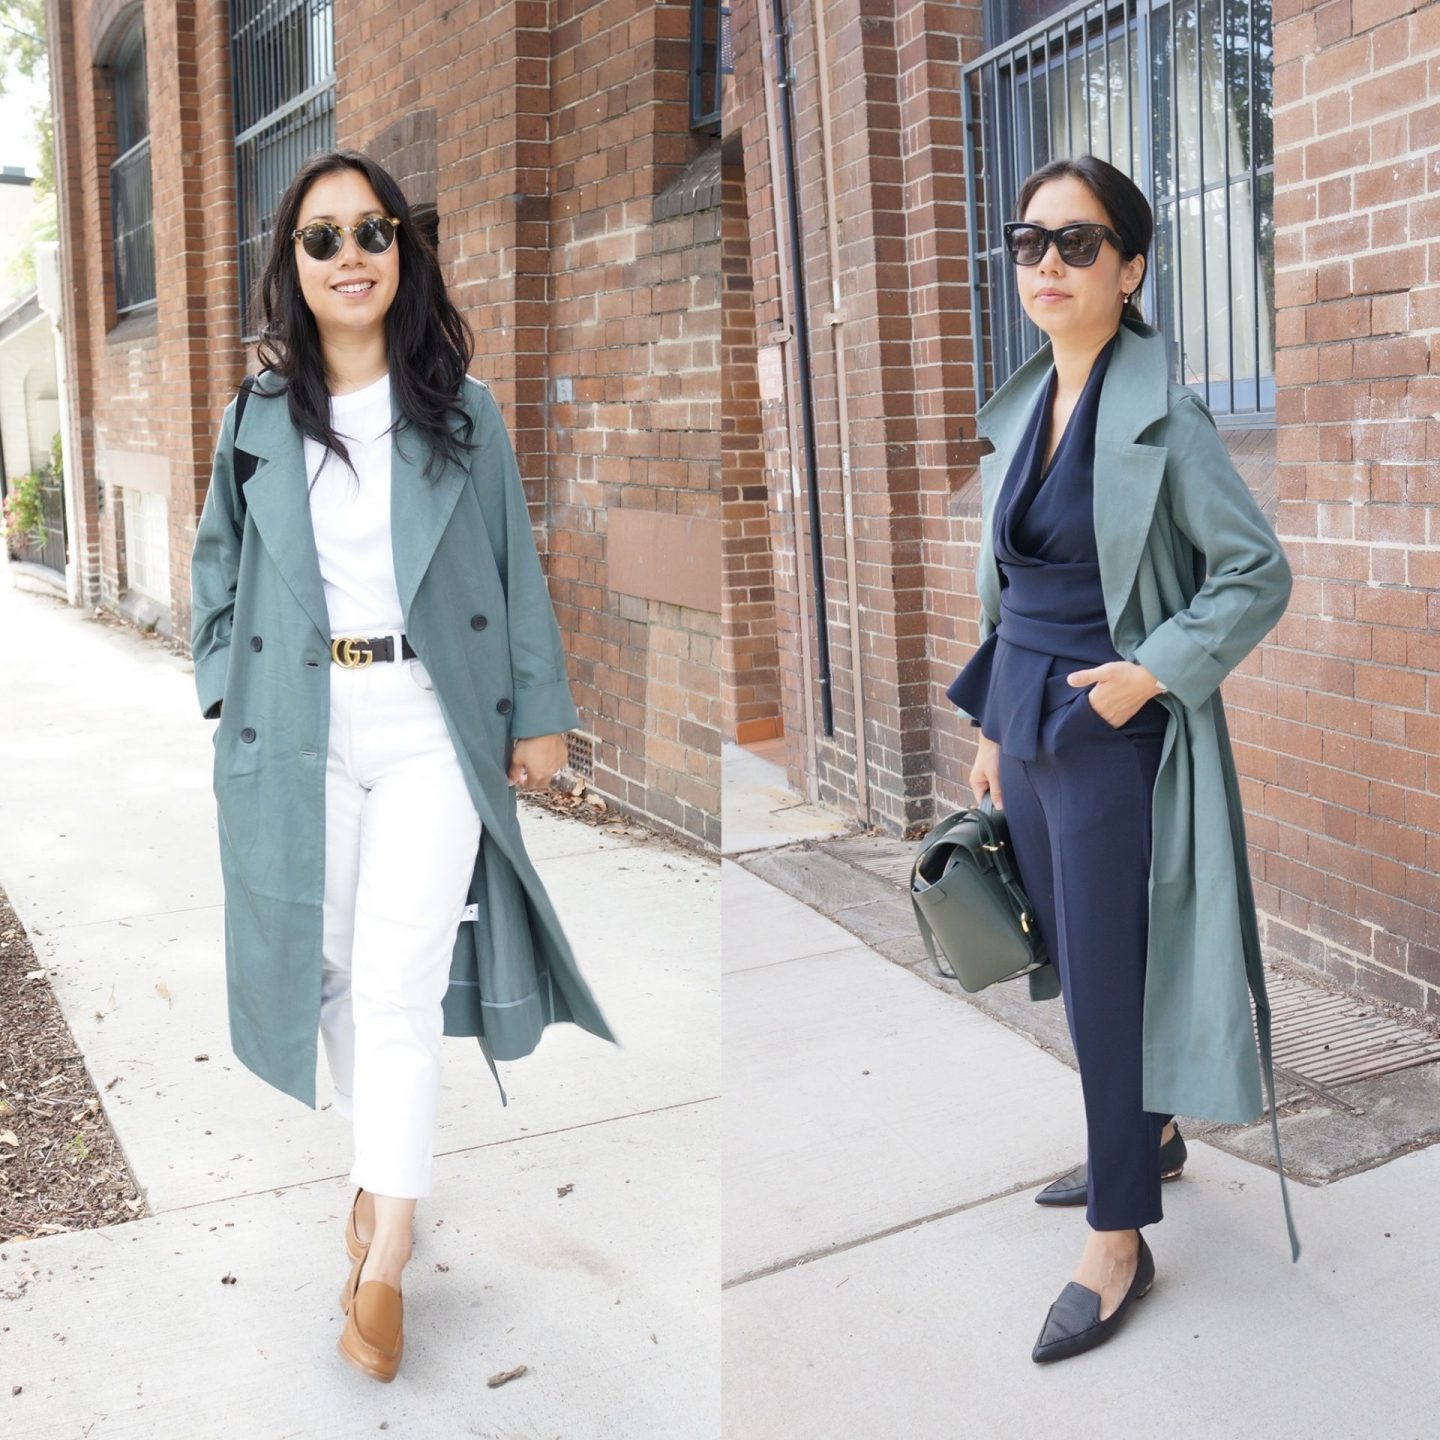 everlane drape trench coat in blog post about everlane jackets for transitional seasons for spring and autumn